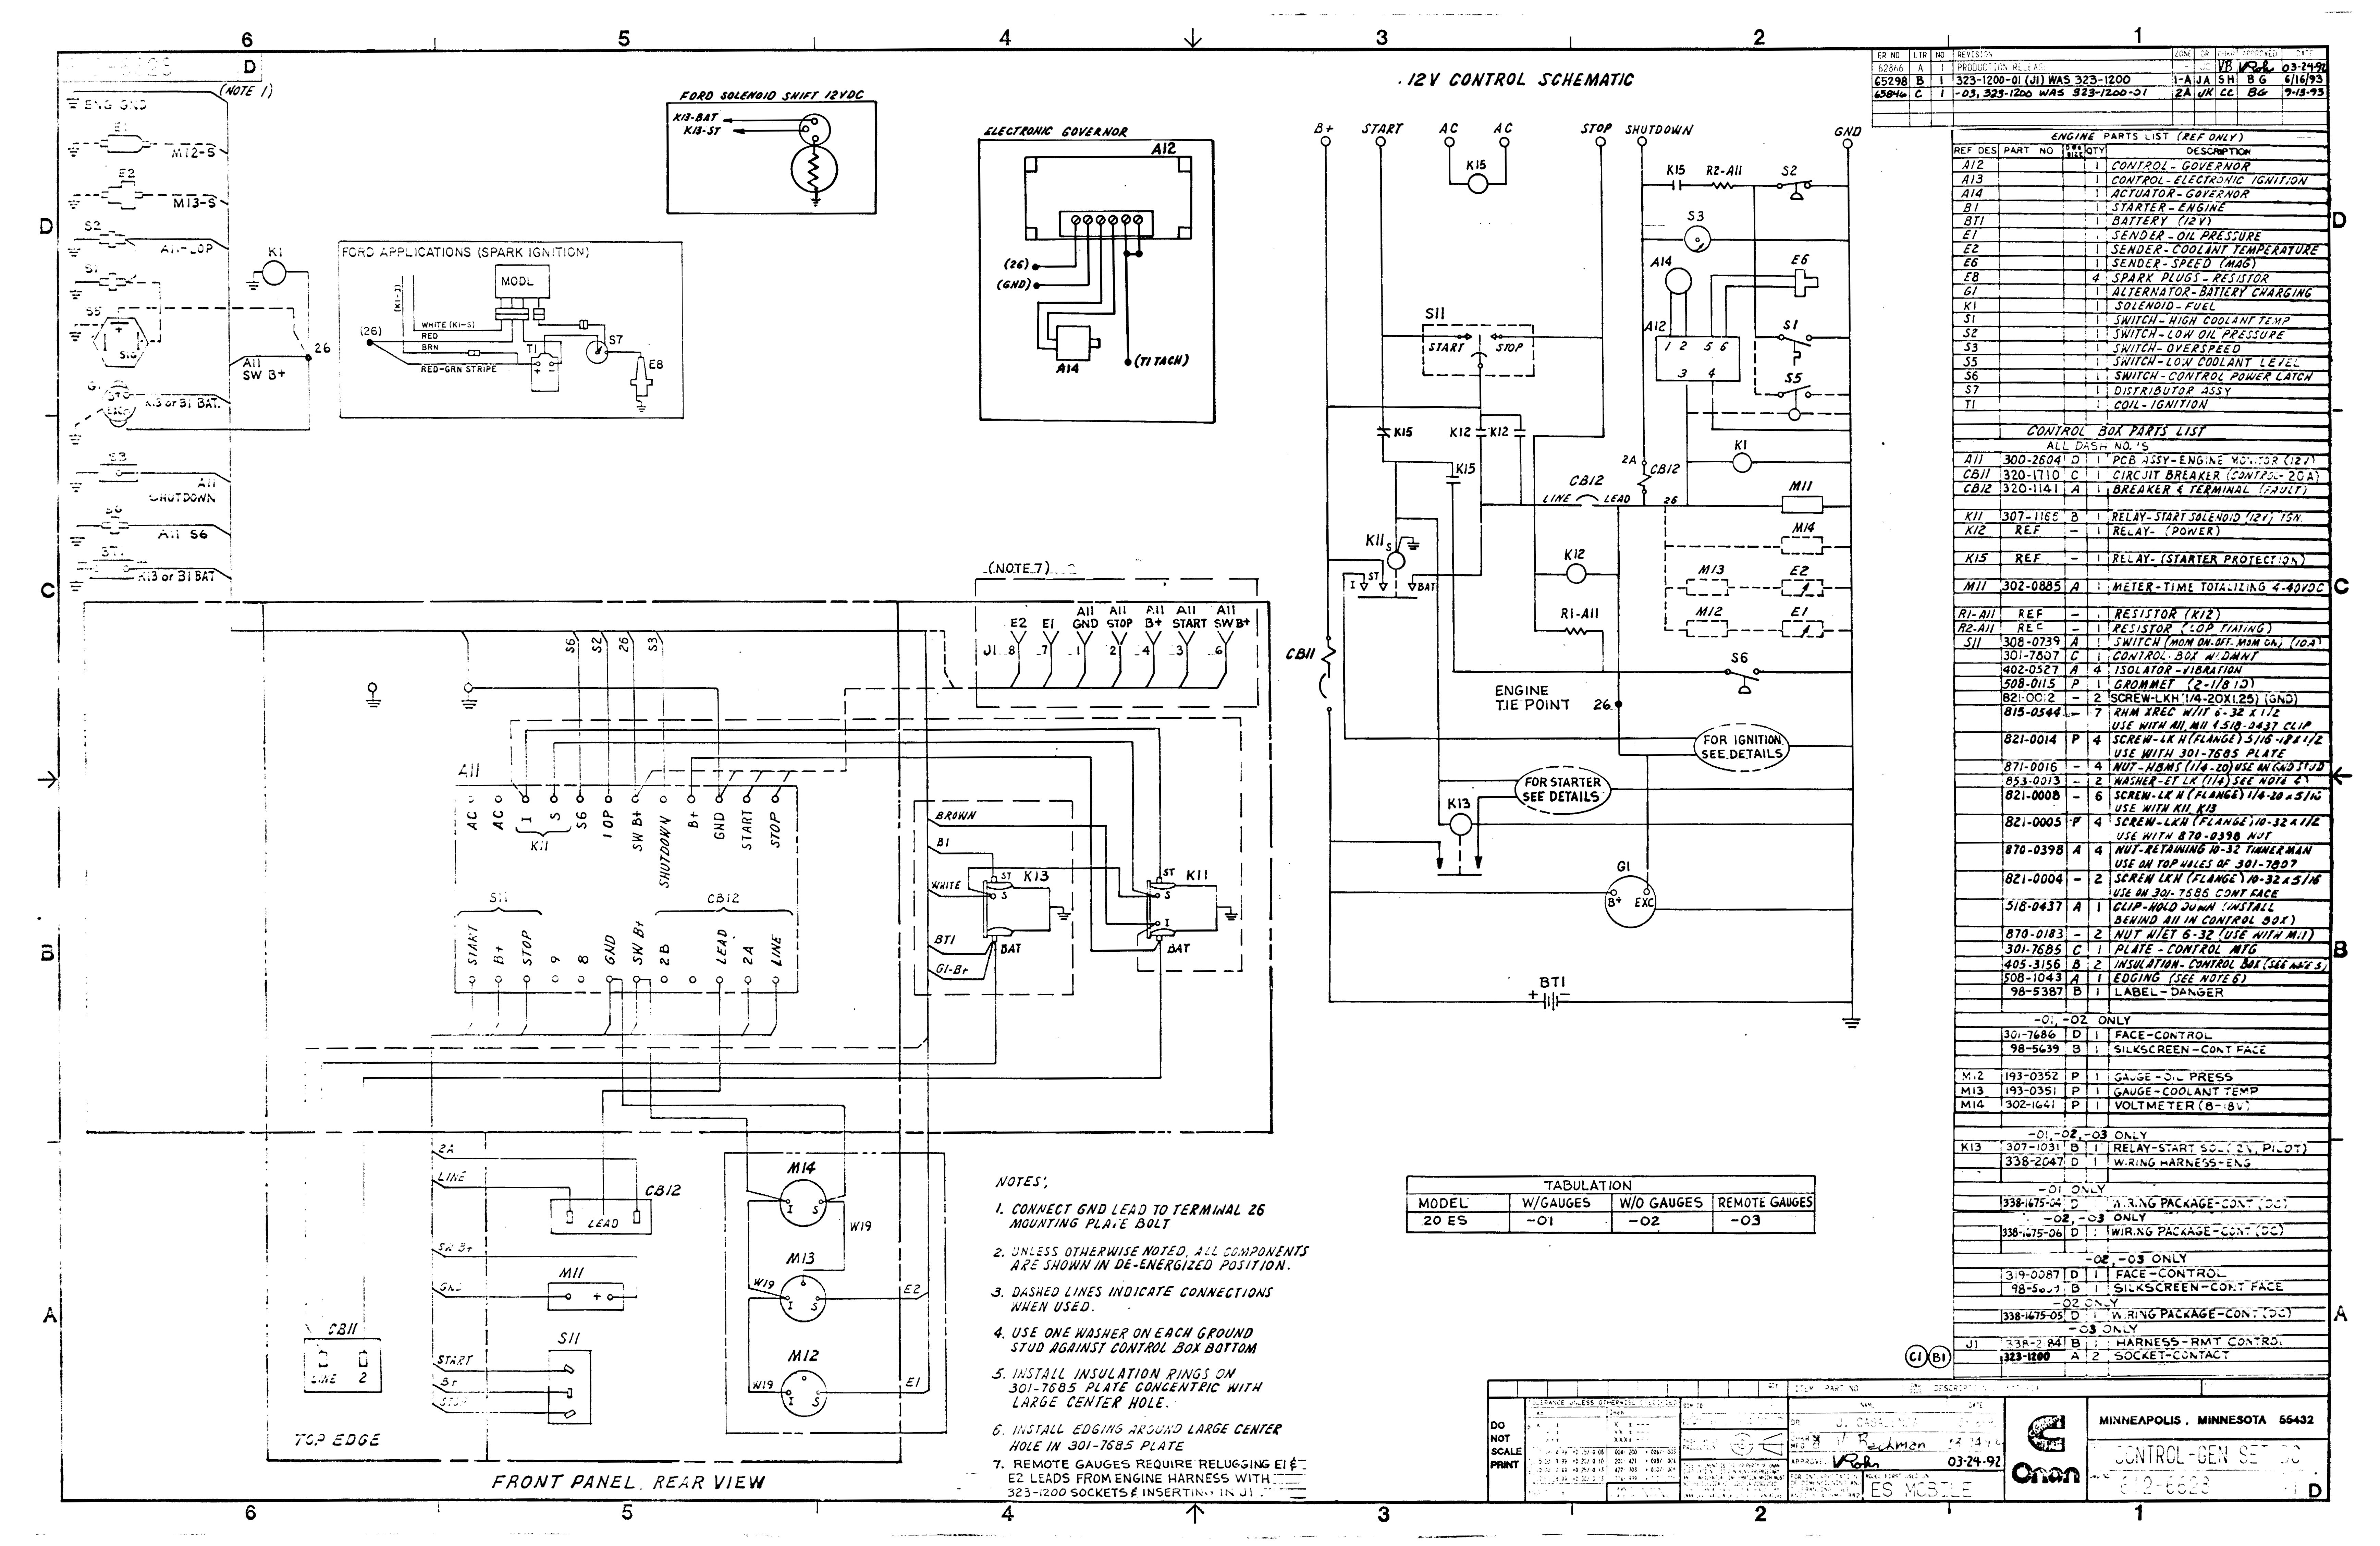 Onan Wiring Schematic - Data Wiring Diagram Schematic - Onan Generator Wiring Diagram